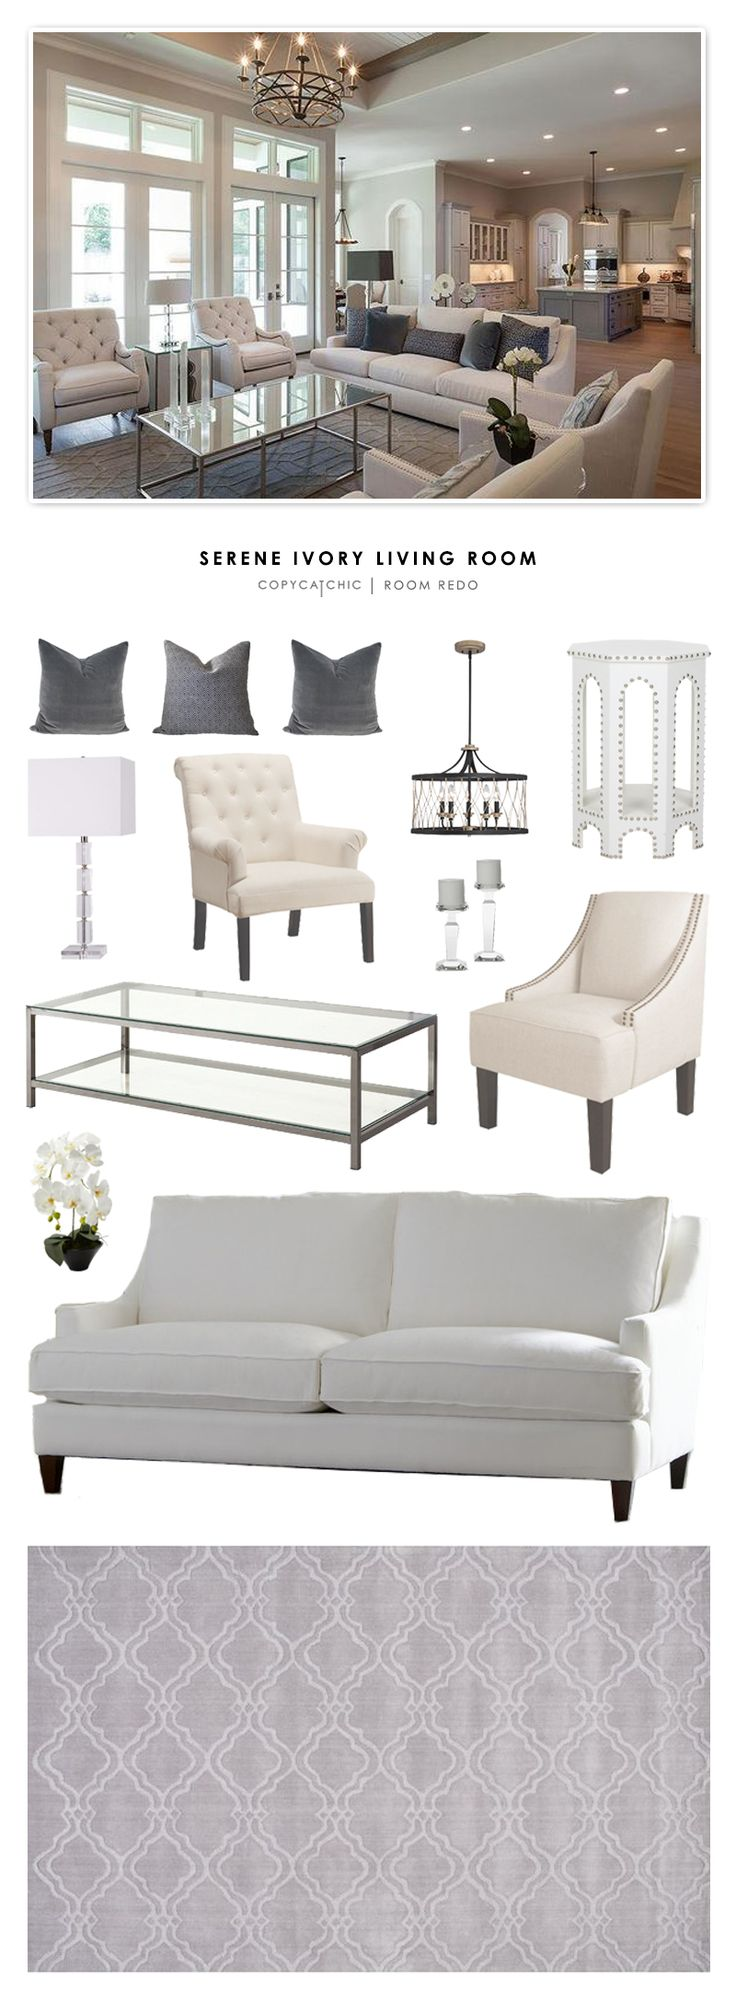 Copy Cat Stylish Room Redo | Serene Ivory Residing Room (| Copy Cat Stylish | stylish for reasonable)